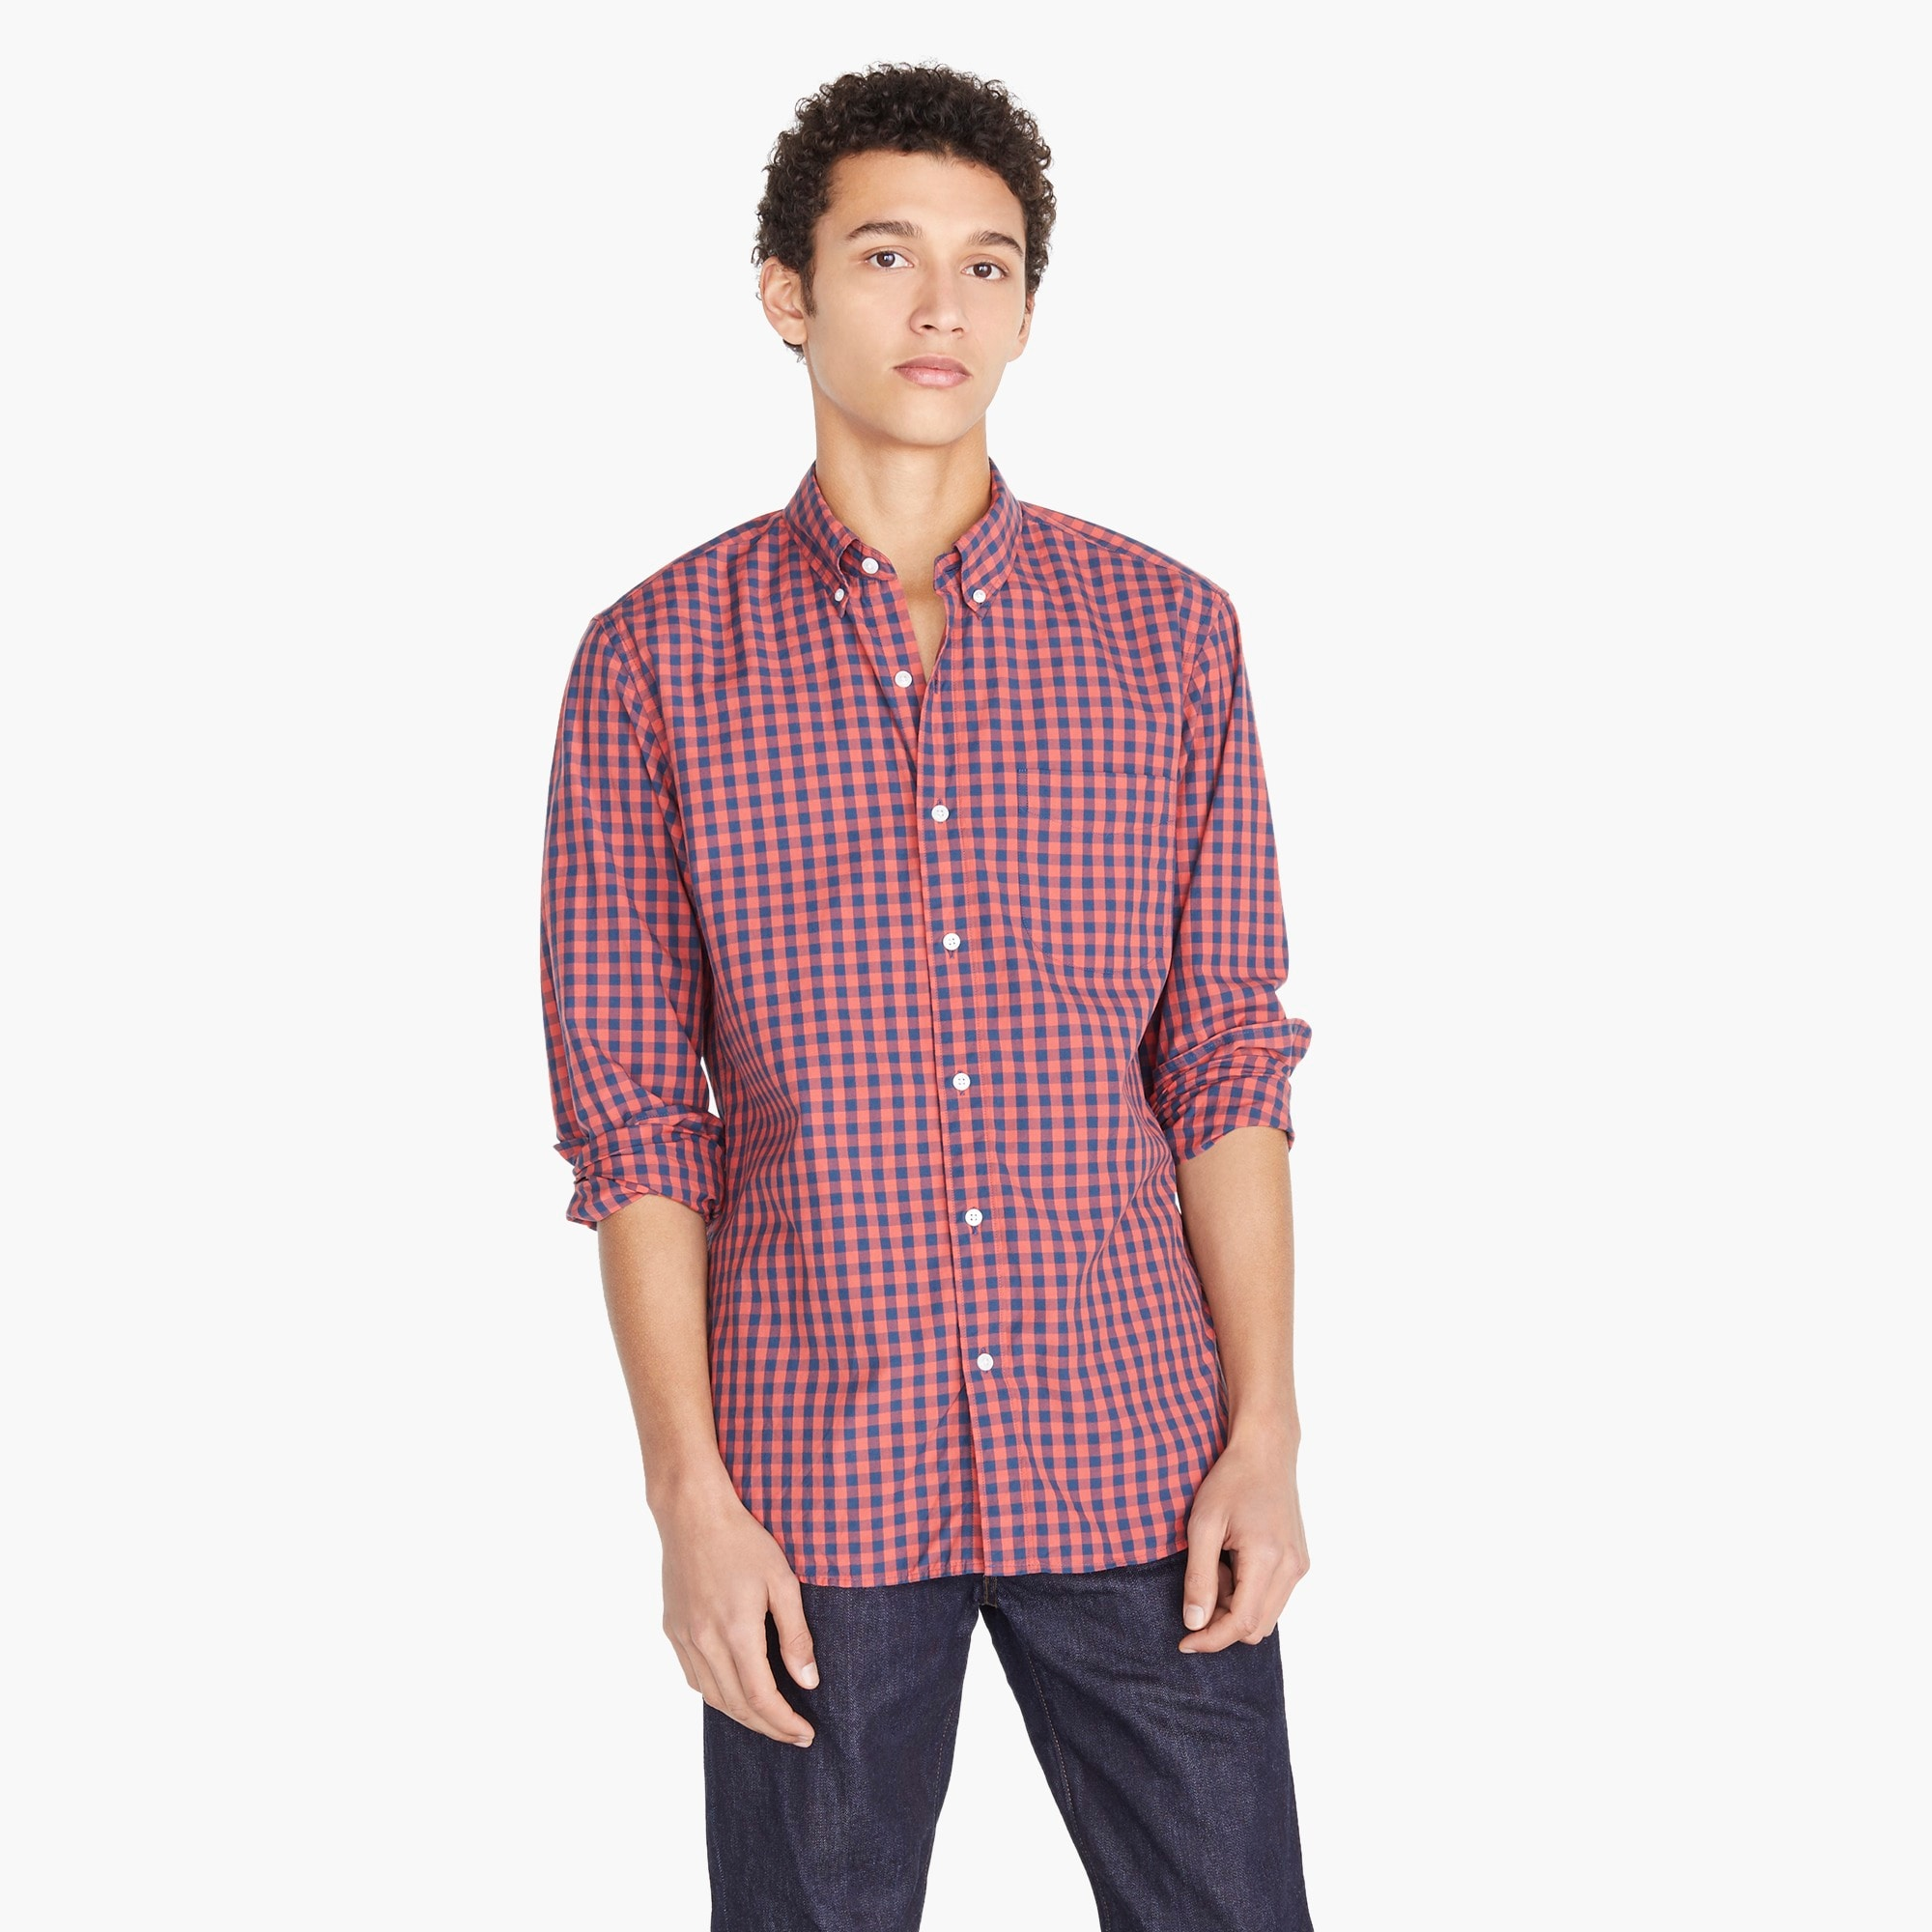 Image 1 for Stretch Secret Wash shirt in primary gingham